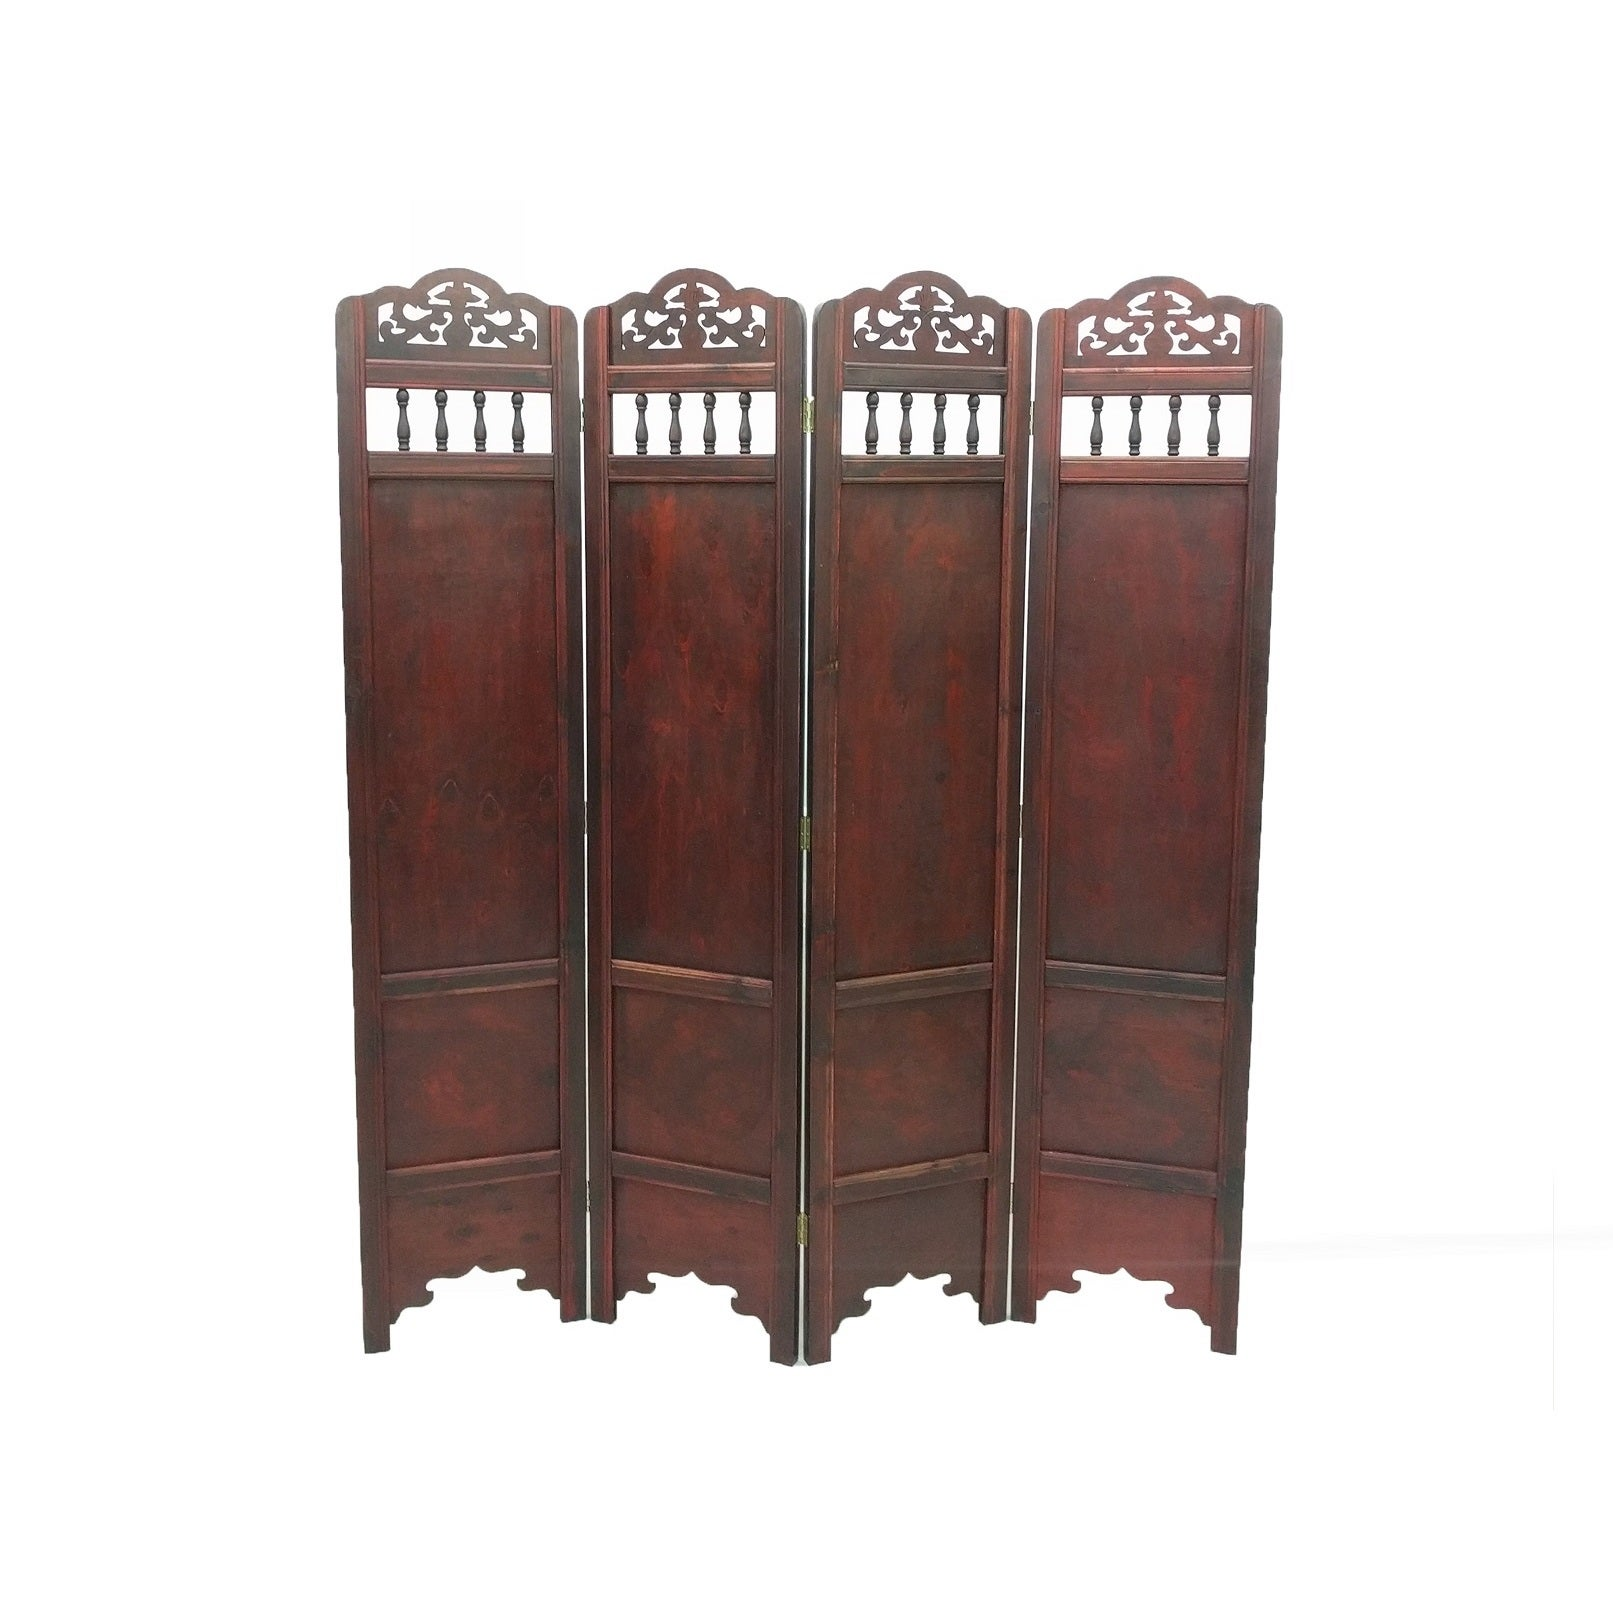 Shop Vintage Waterpaint Flower Wood 6 foot Room Divider Screen On